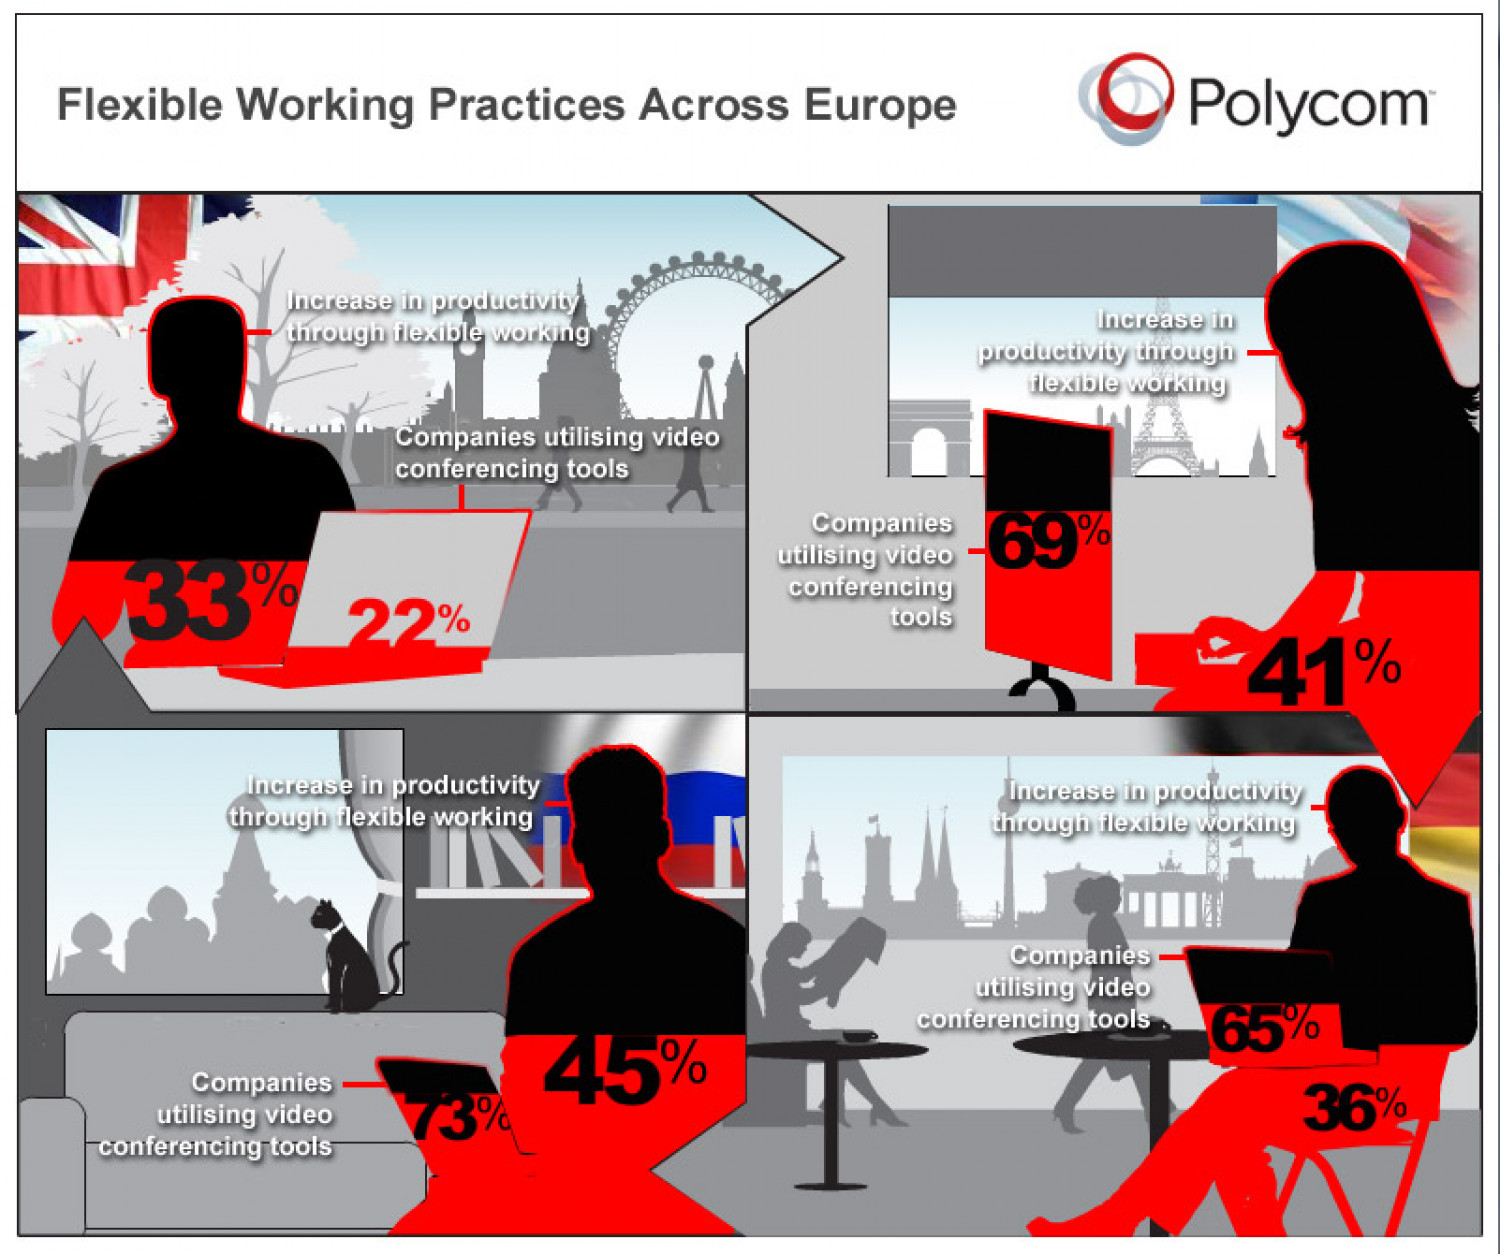 Flexible Working Practises Across Europe Infographic